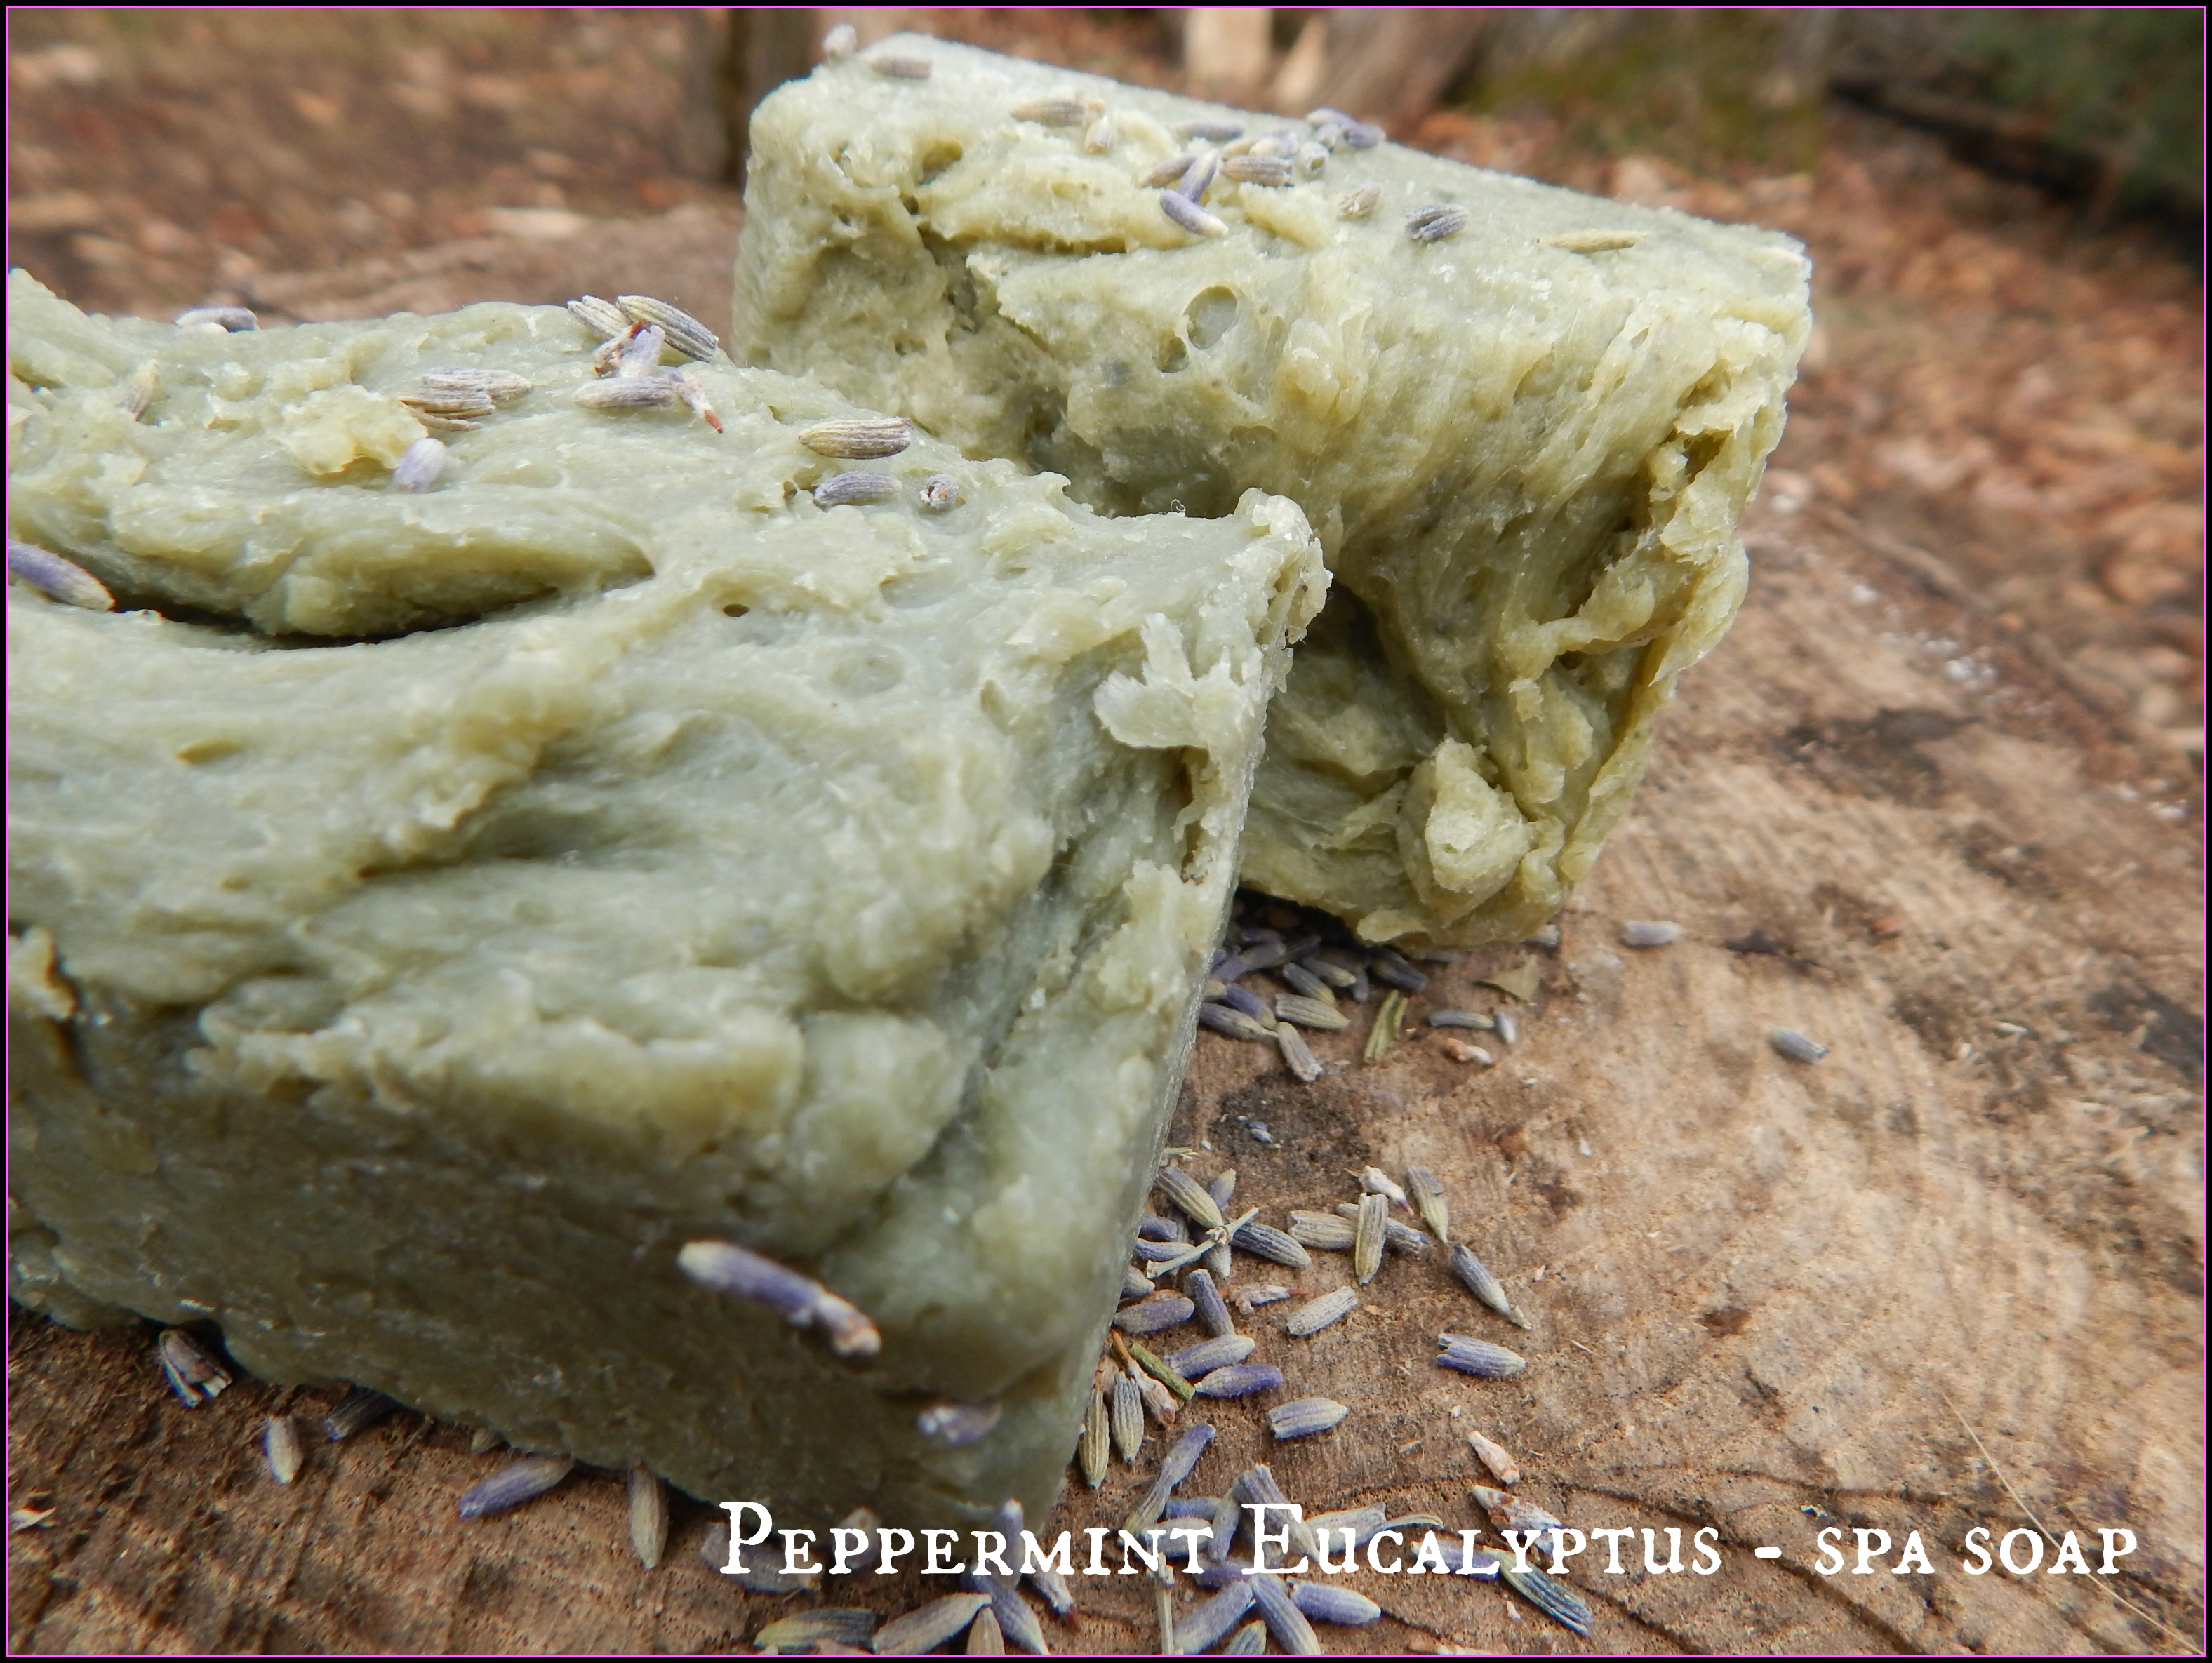 Peppermint Eucalyptus Soap